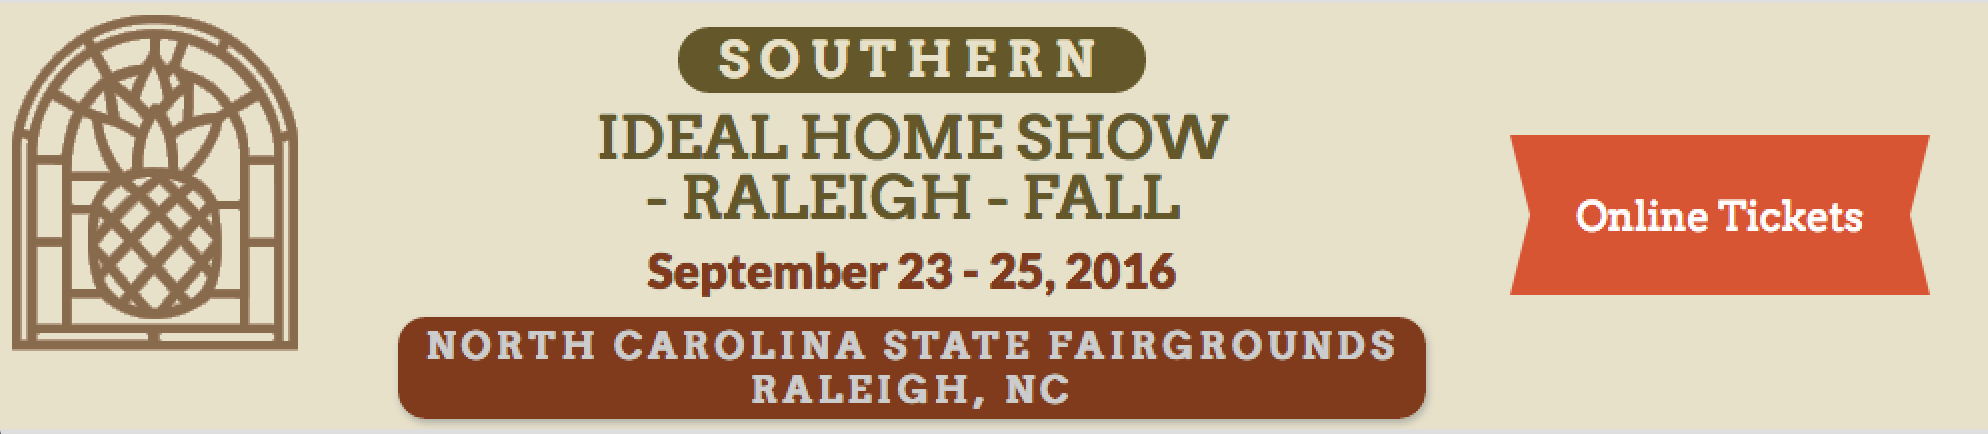 Ideal-Home-Show-Raleigh-Fall - TRIANGLE Cabinet Cures